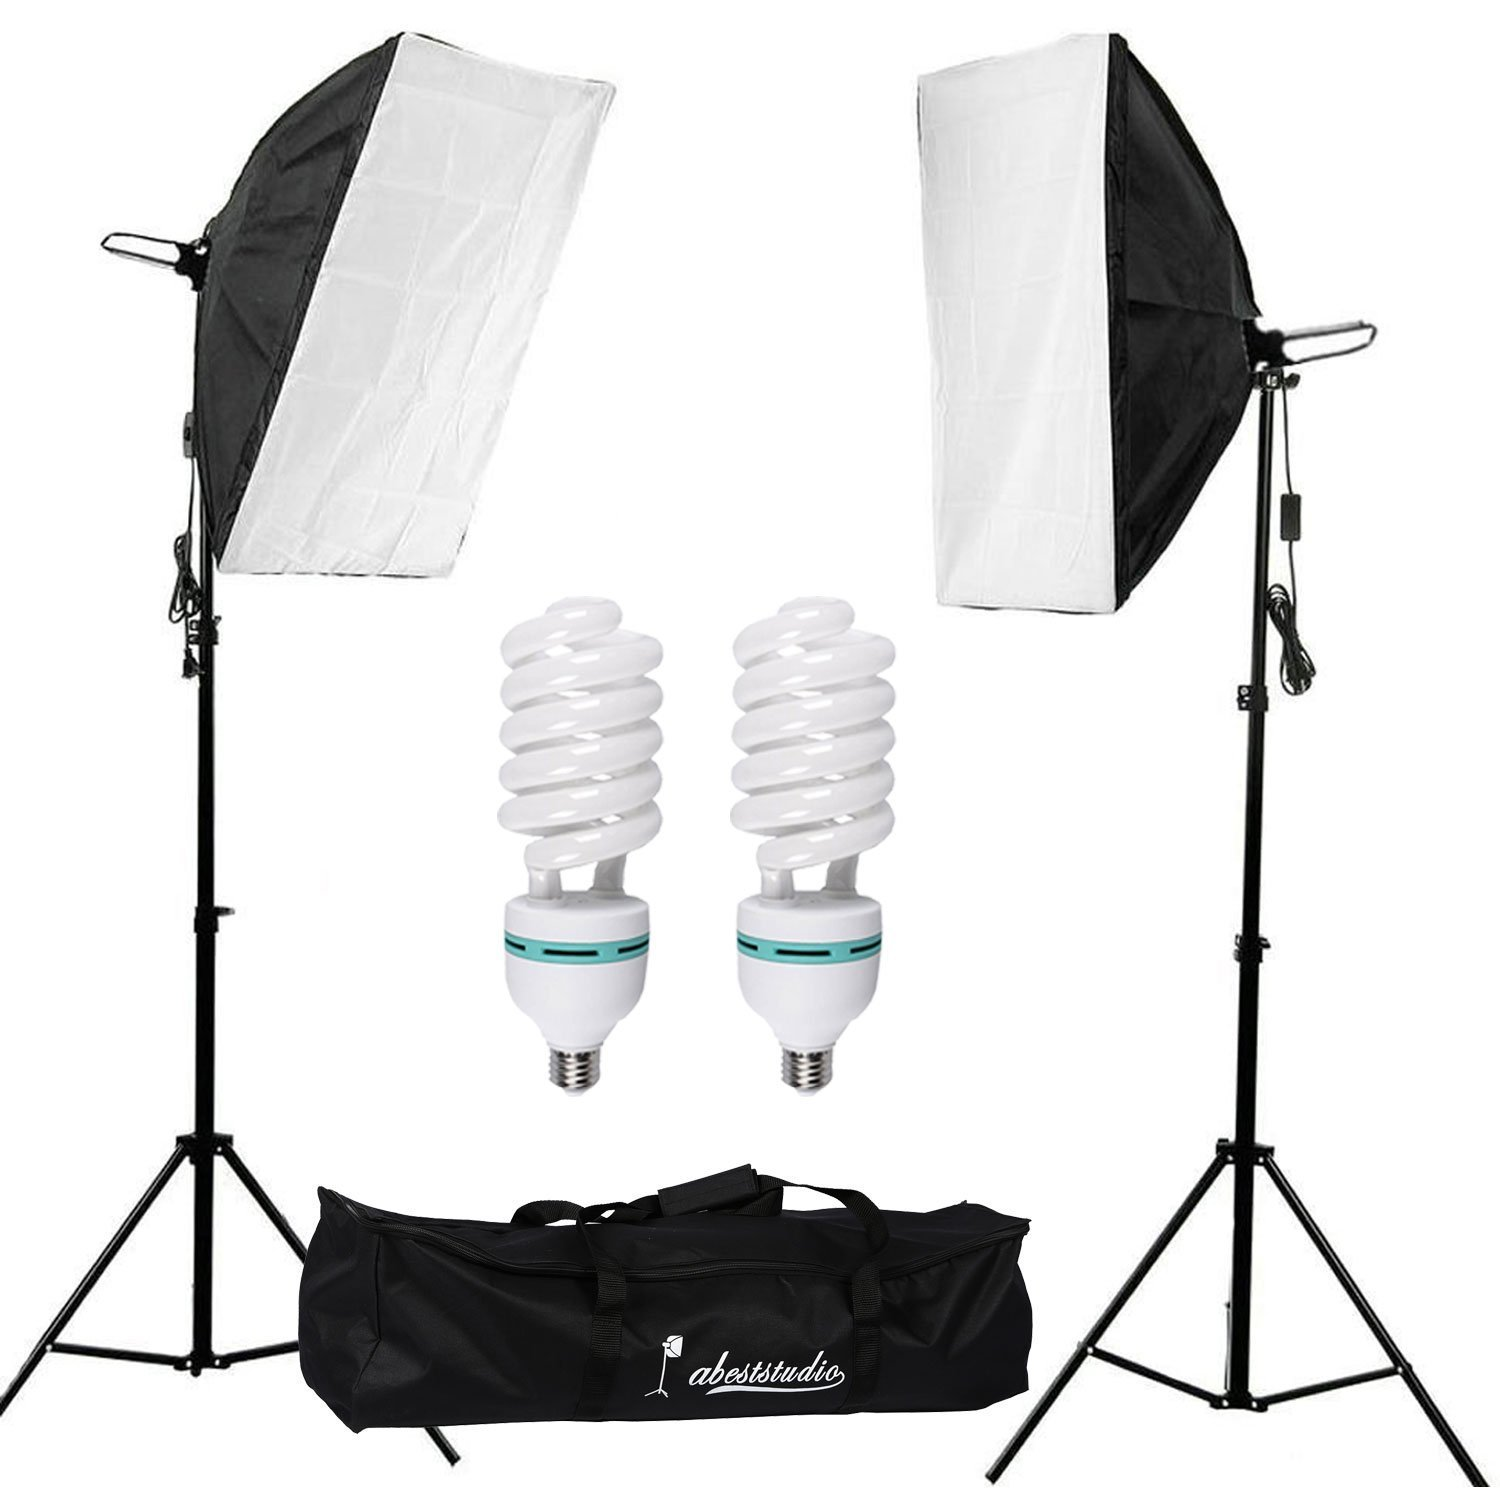 with studio photo photography product including video bulb light ligh neewer daylight lighting diffuser softbox kit cfl x balanced socket